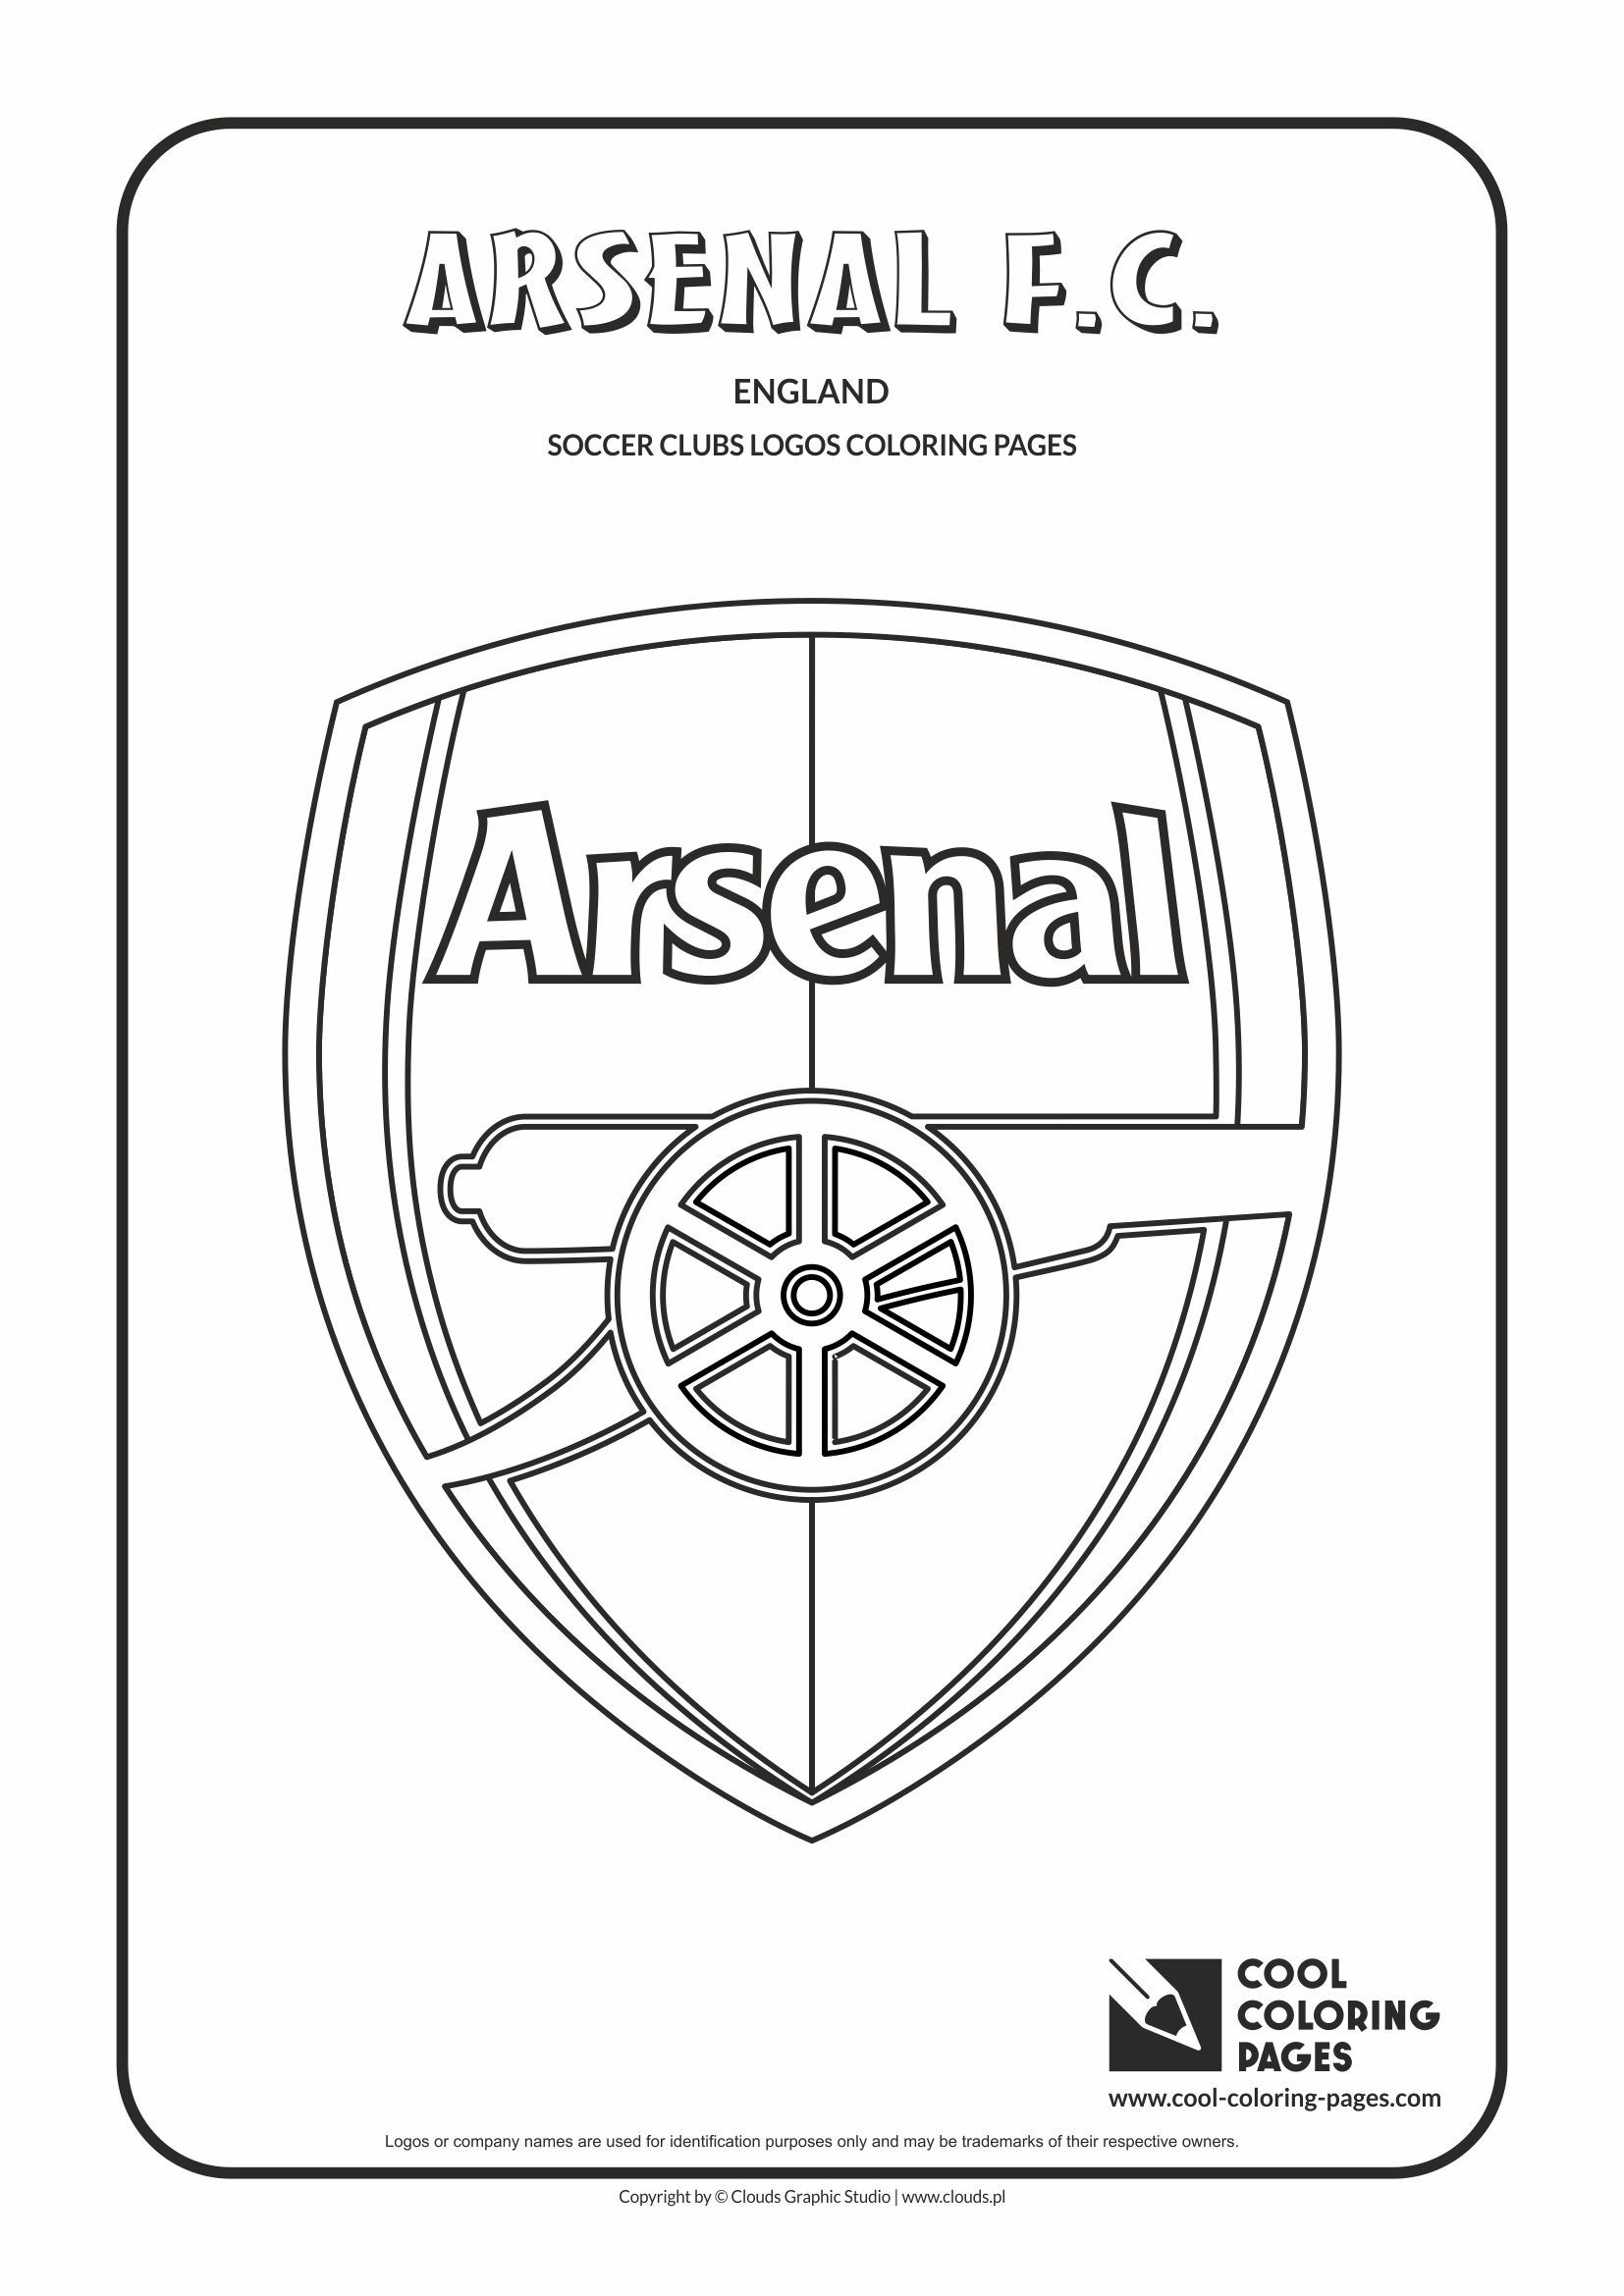 Cool Coloring Pages - Soccer Club Logos / Arsenal F.C. logo / Coloring page with Arsenal F.C. logo